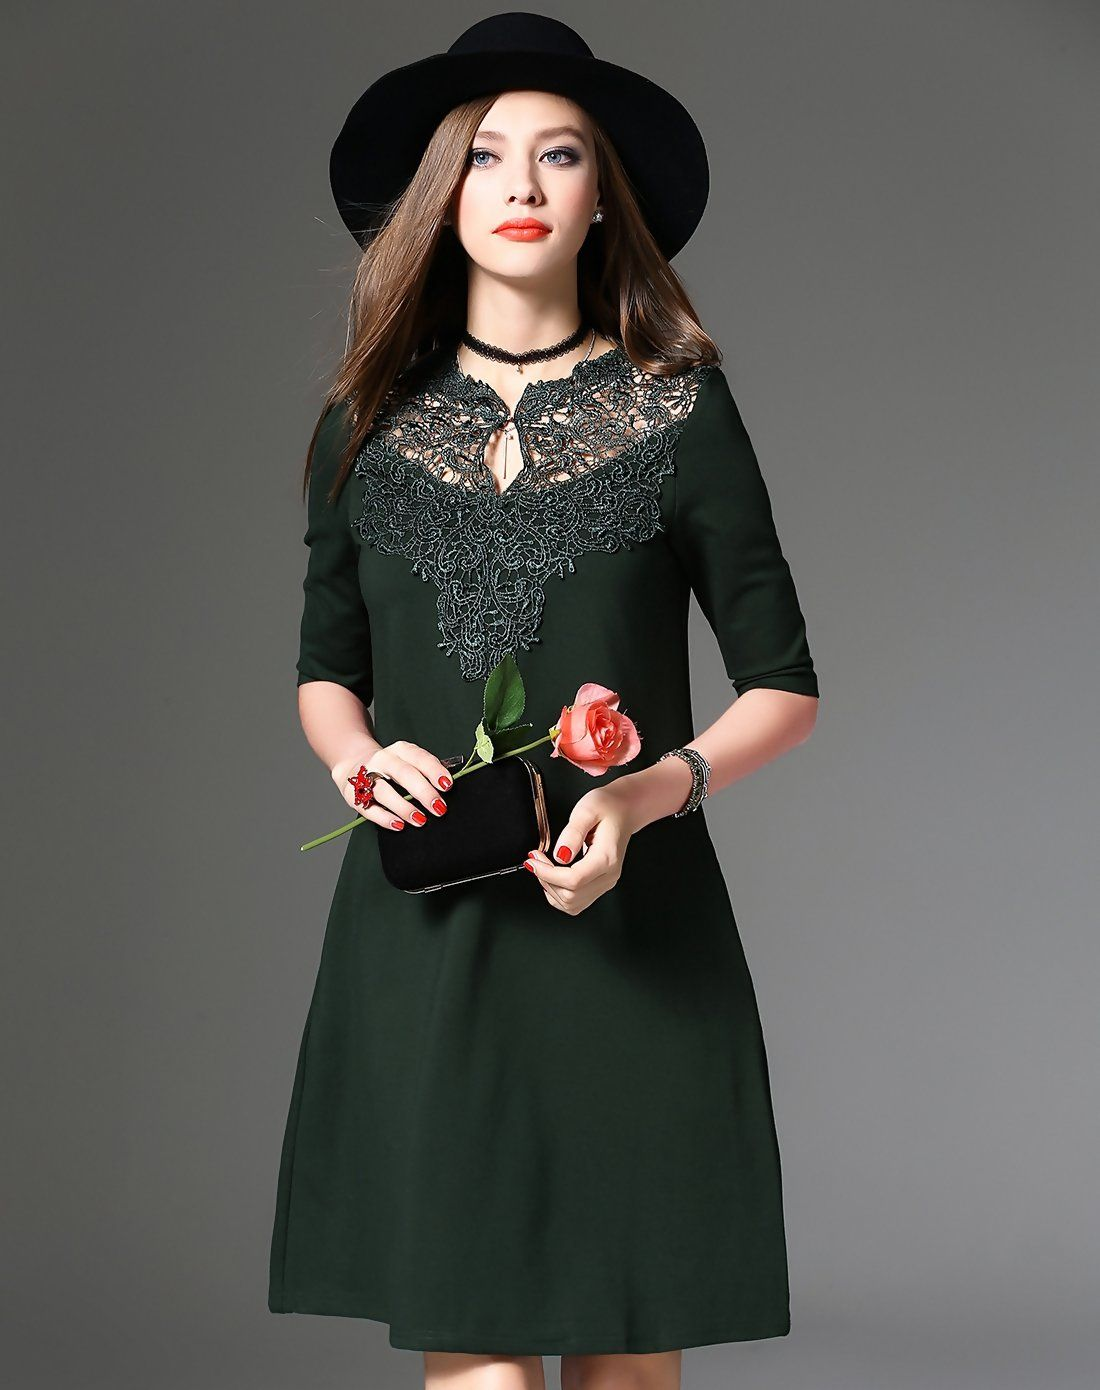 1c4f35fec4f7  AdoreWe  VIPme (VIPSHOP Global) Womens - DAIPYA Dark Green Elegant Lace  Cotton Shift Short Dress - VIPme.com - AdoreWe.com